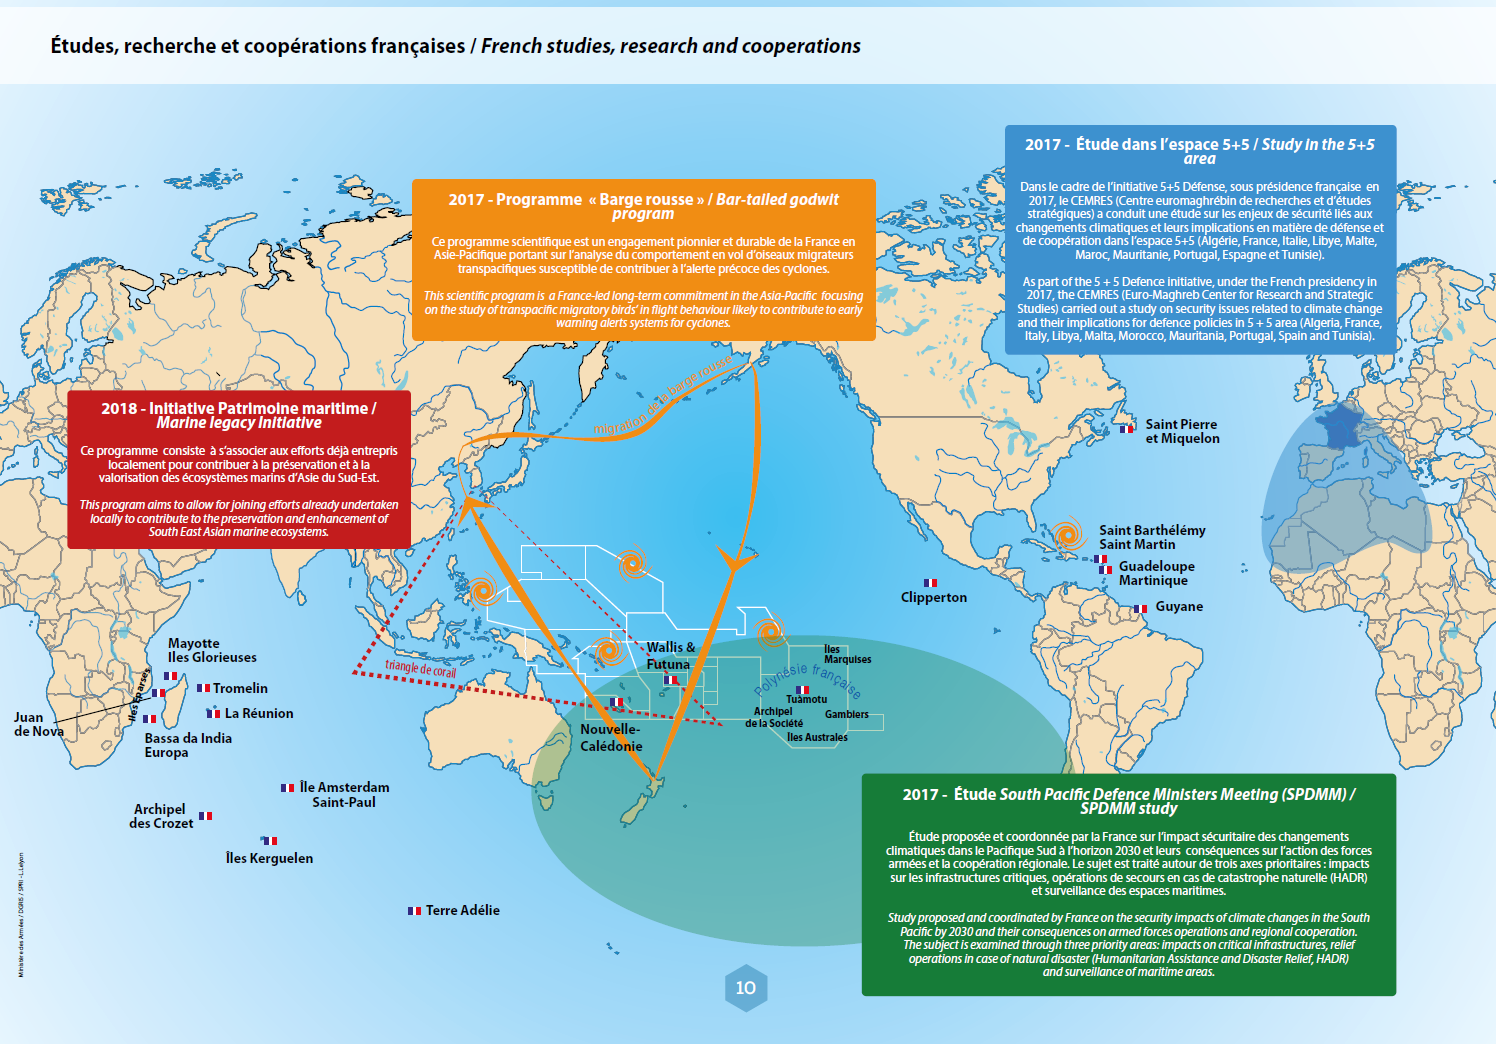 Map Of France With Key.France Includes Climate Change As Key Feature Of Its Defence